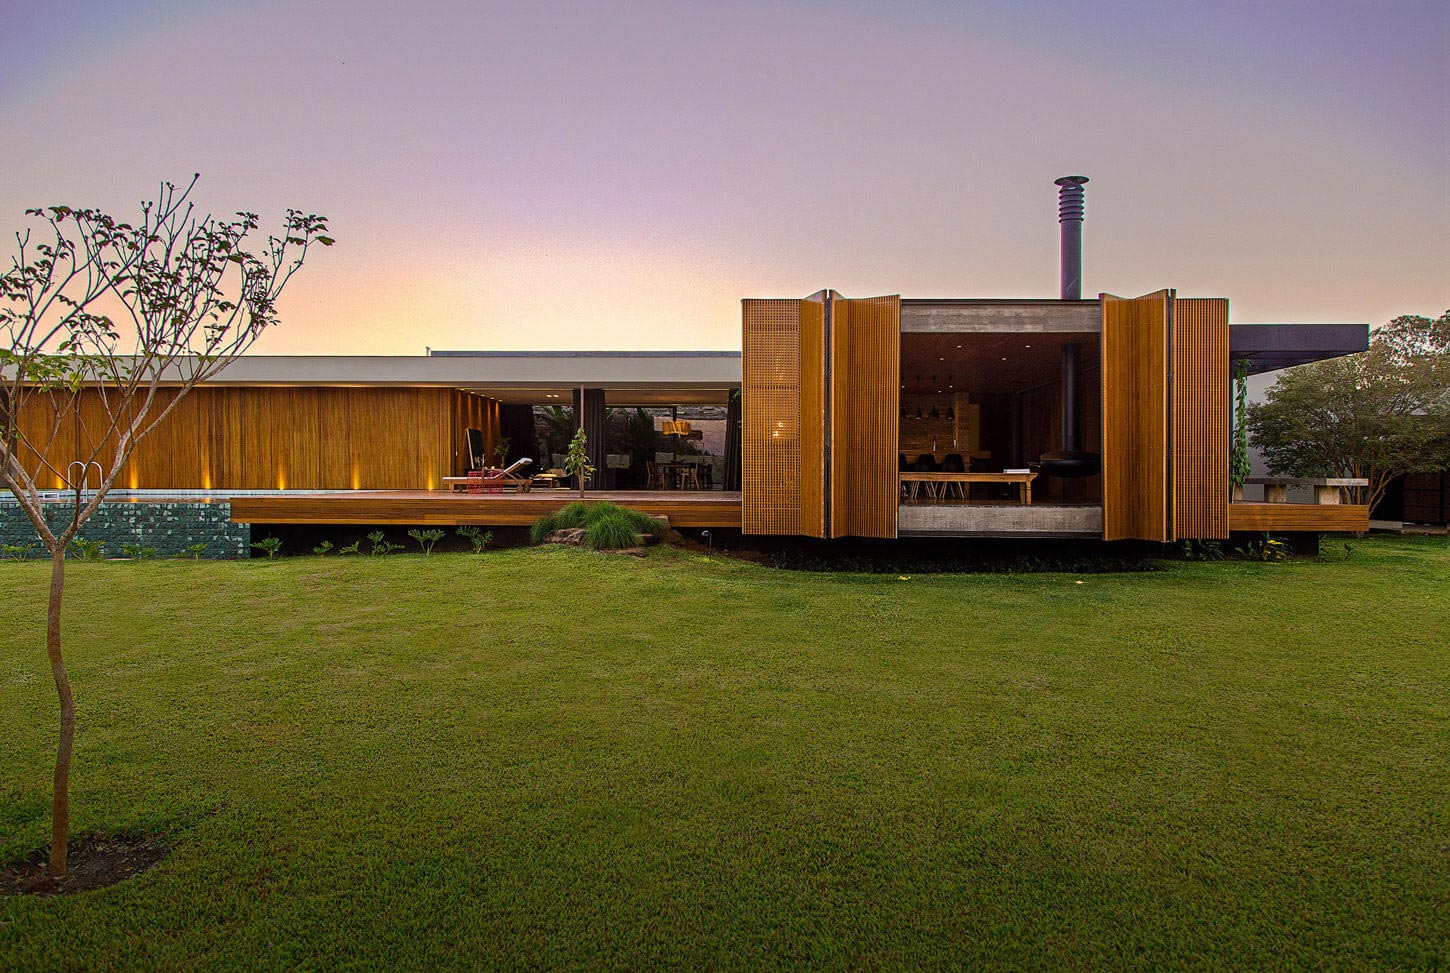 one story home designed in simple lines and volumes that create one story home designed in simple lines and volumes that create relationships between internal and external space caandesign architecture and home